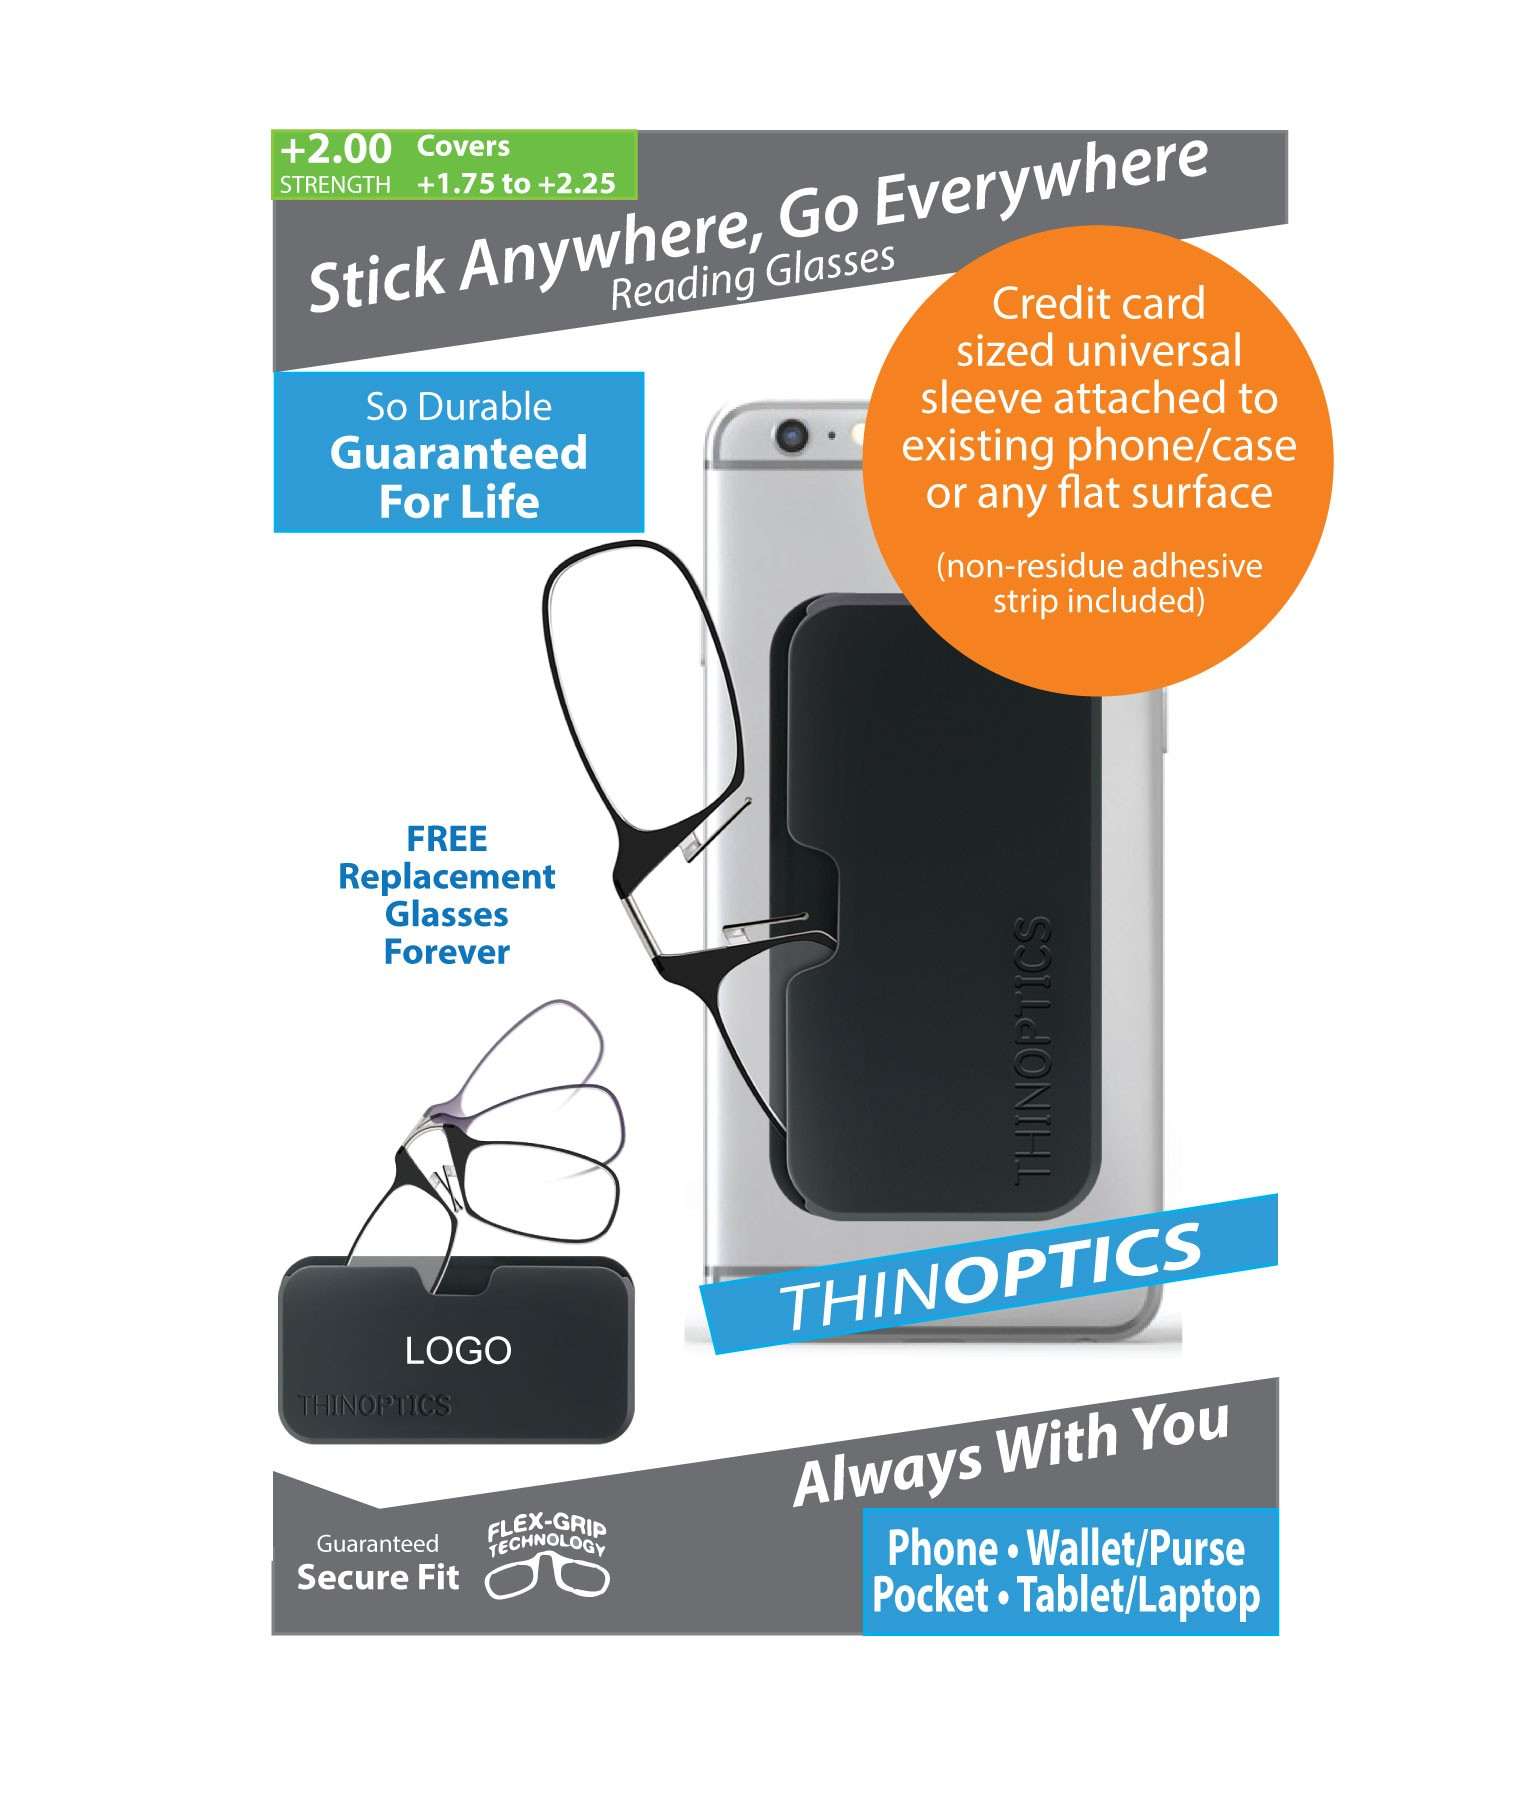 ThinOPTICS - Stick Anywhere, Go Everywhere Reading Glasses